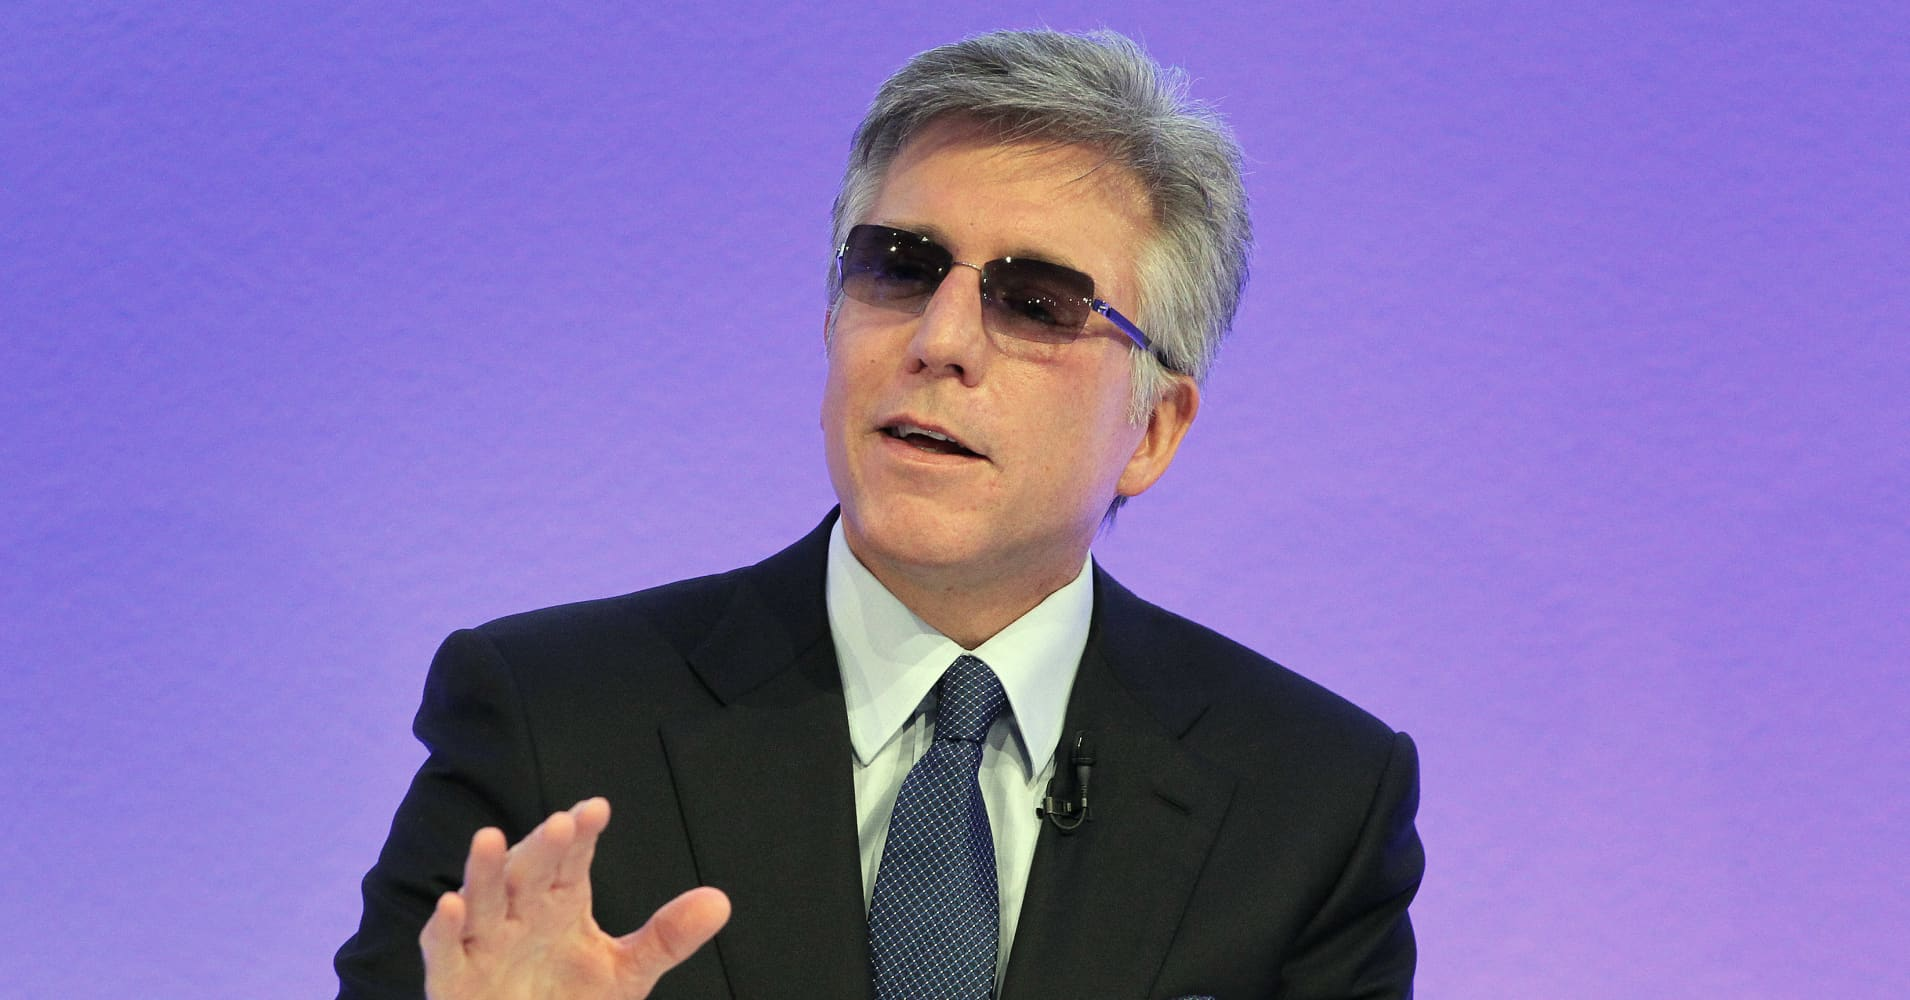 Bill McDermott, CEO of German software giant SAP, addresses the media during the company's annual financial statement at it's headquarters in Walldorf near Heidelberg, southern Germany, on January 24, 2017.